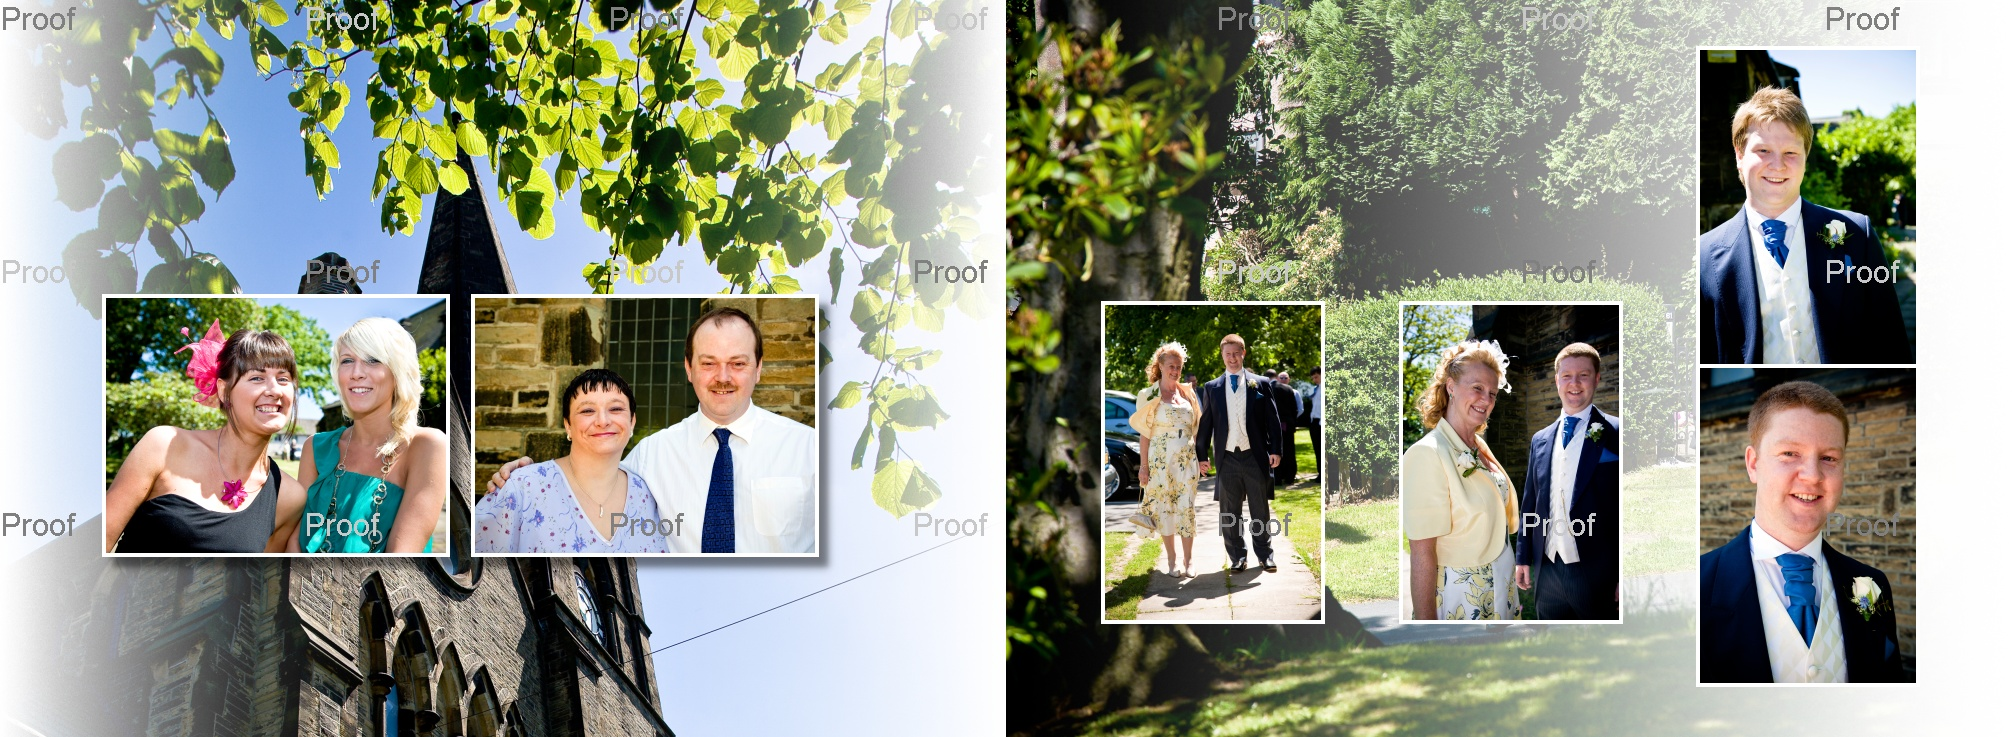 wedding guests & family arriving at St Marys Church in Wyke for Chris & Lydia's wedding storybook pages 8-9